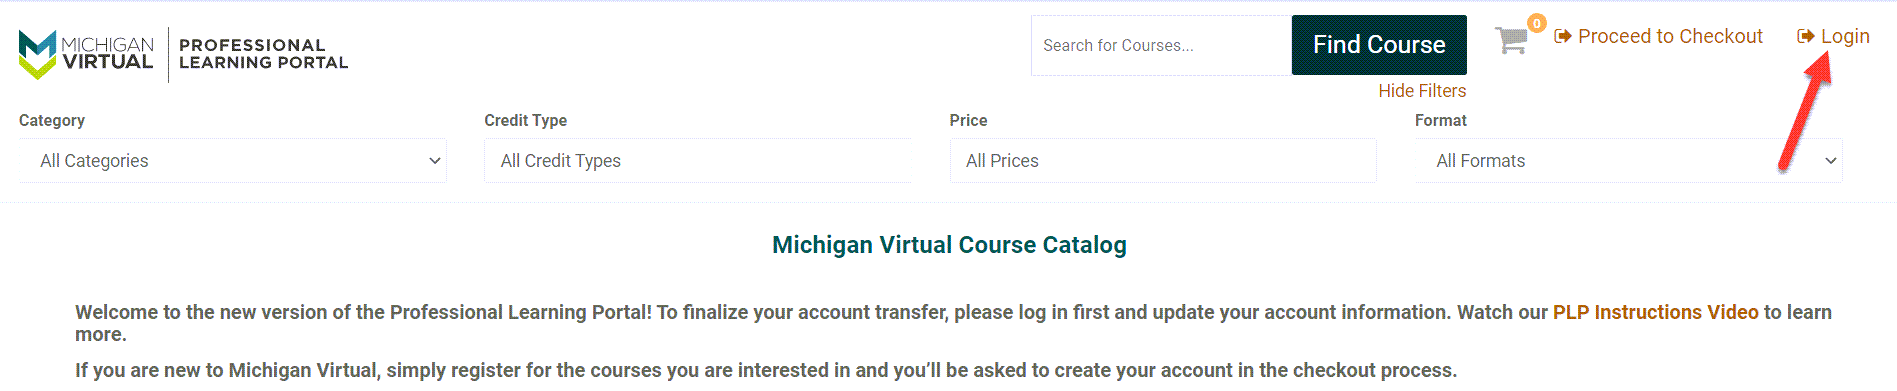 The professional learning portal is shown with an arrow pointing to the Login link on the upper right corner of the page.